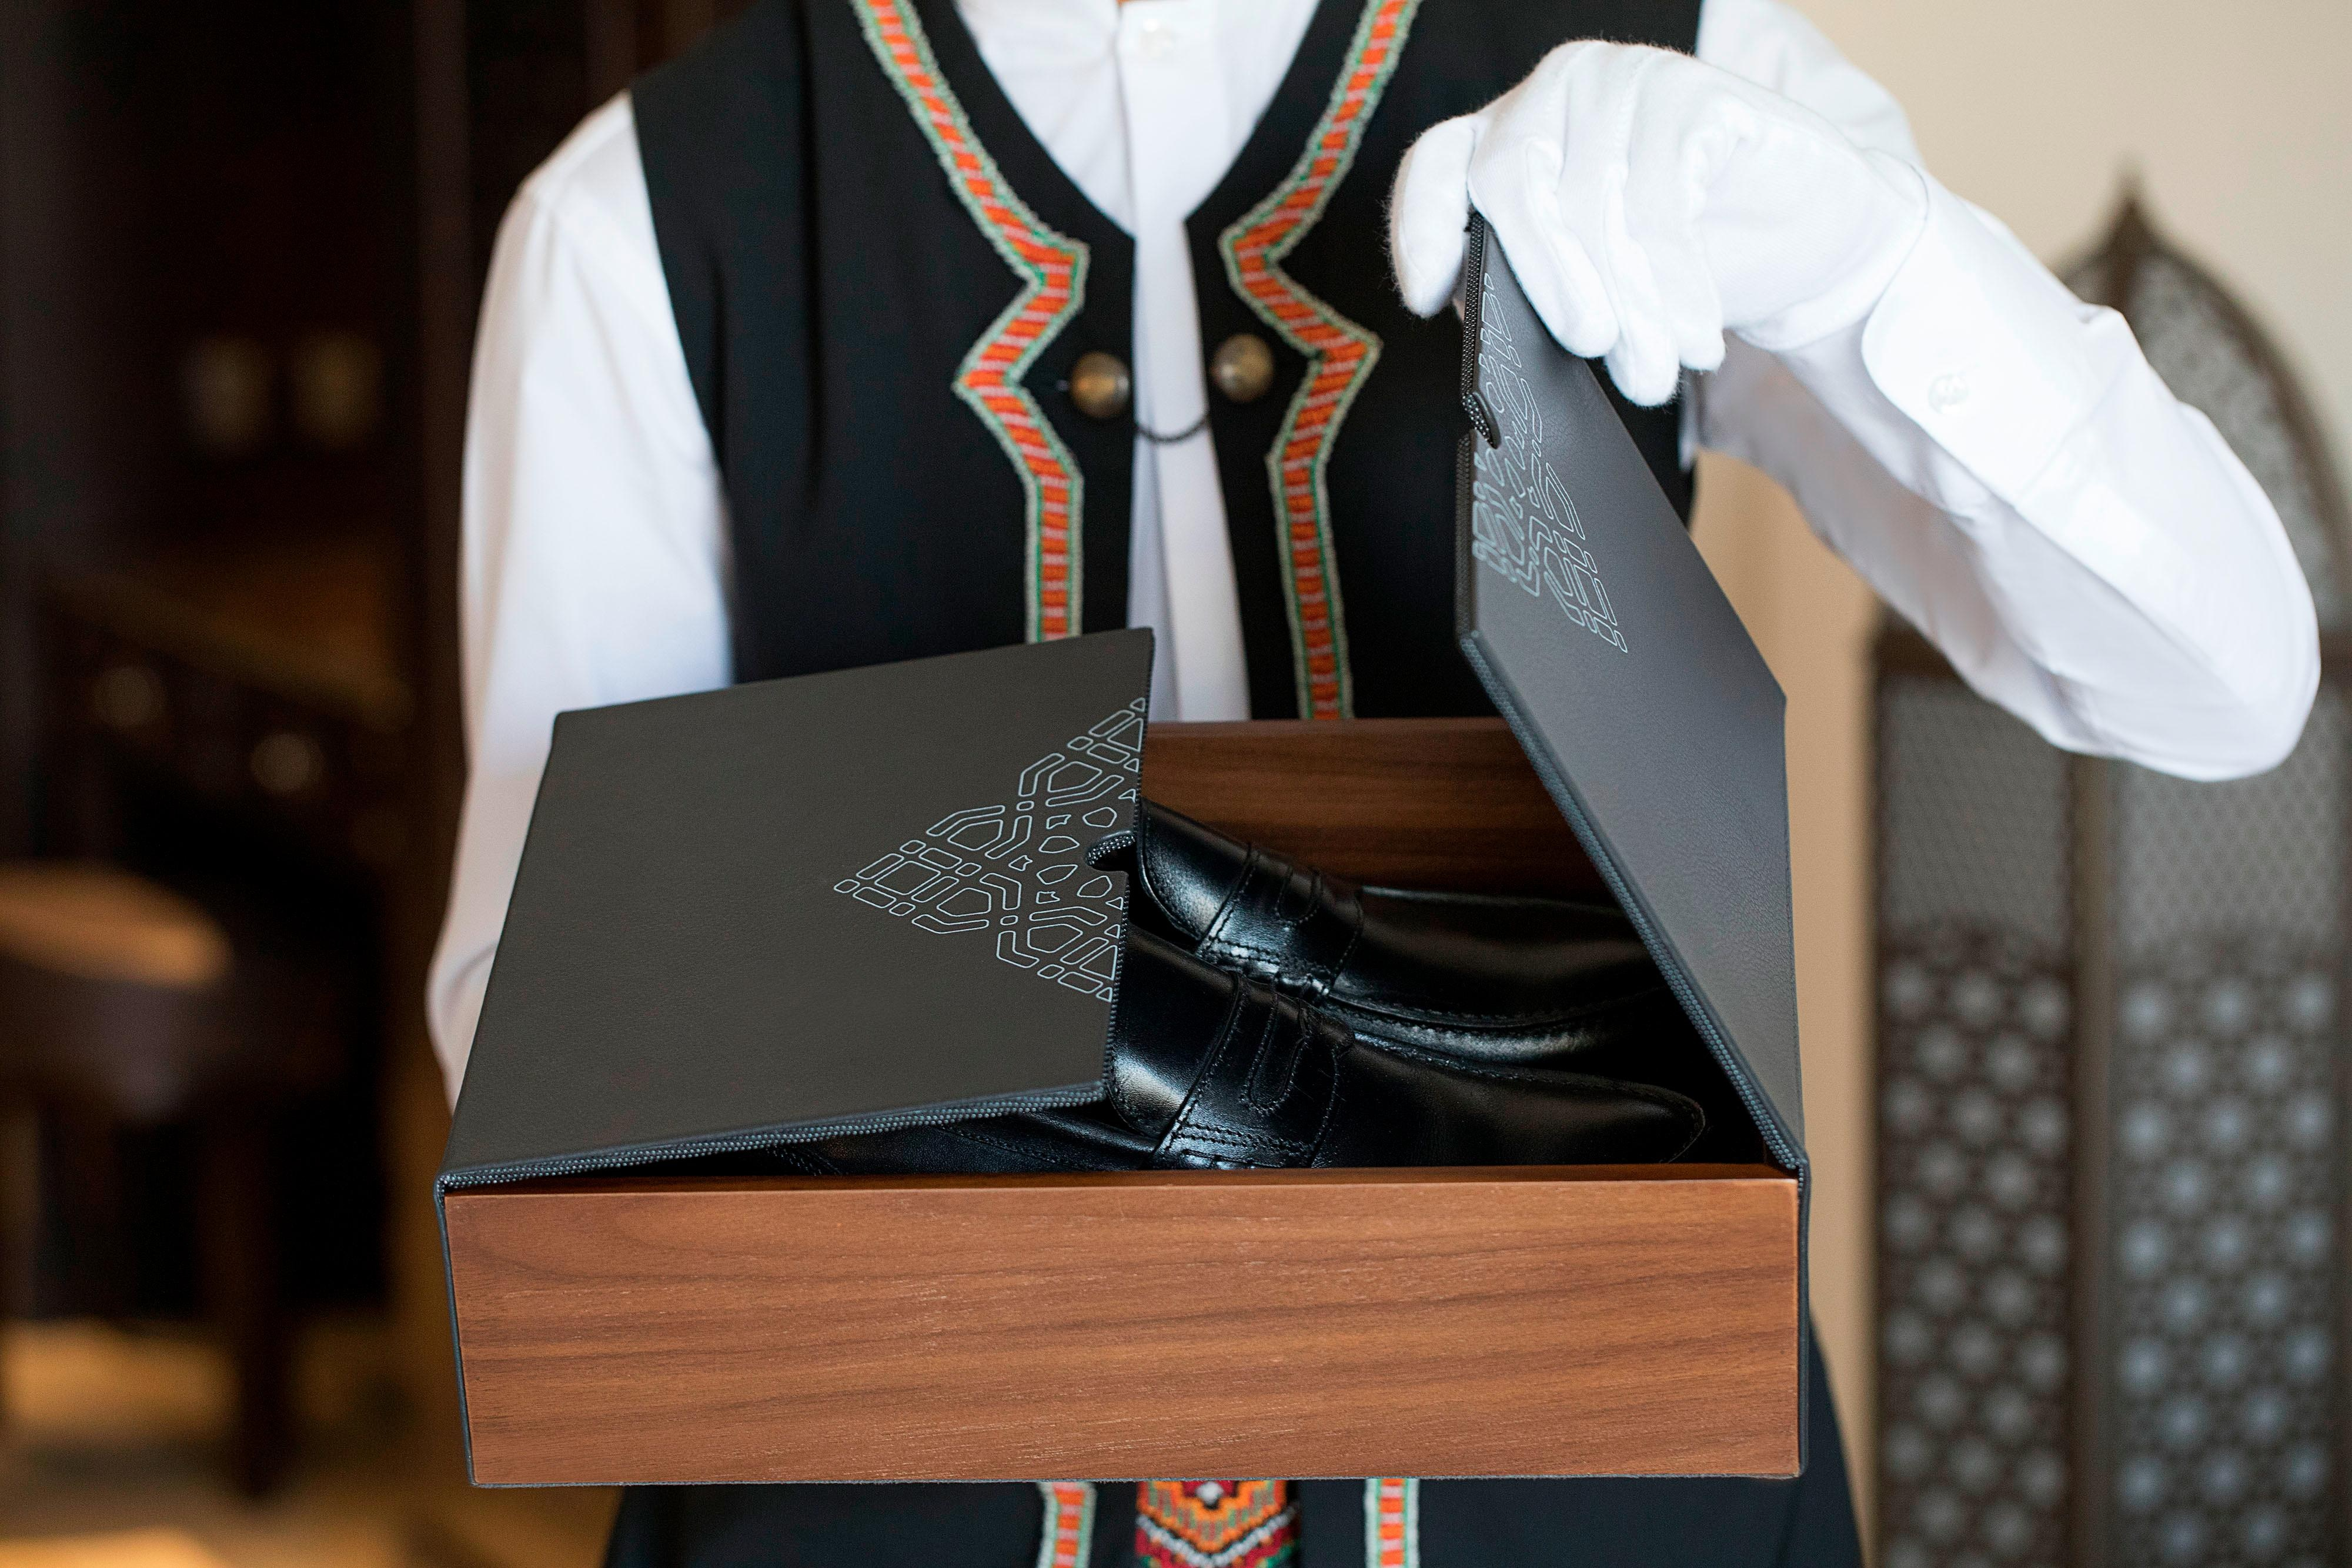 The personalized service of The Luxury Collection Butler promises to create memorable, enriching experiences.